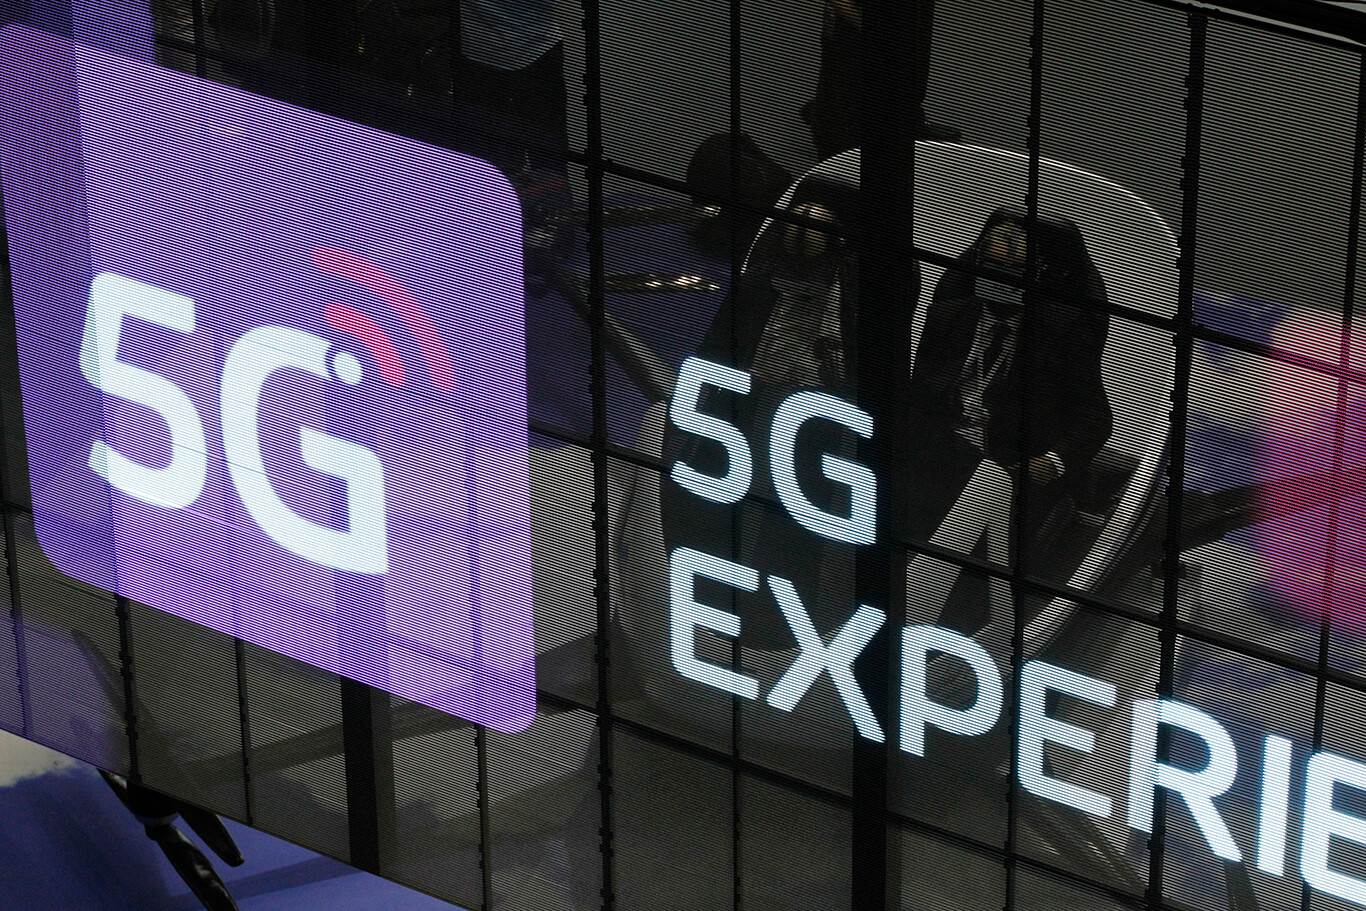 MWC 2019 presented the 5G intelligent connection